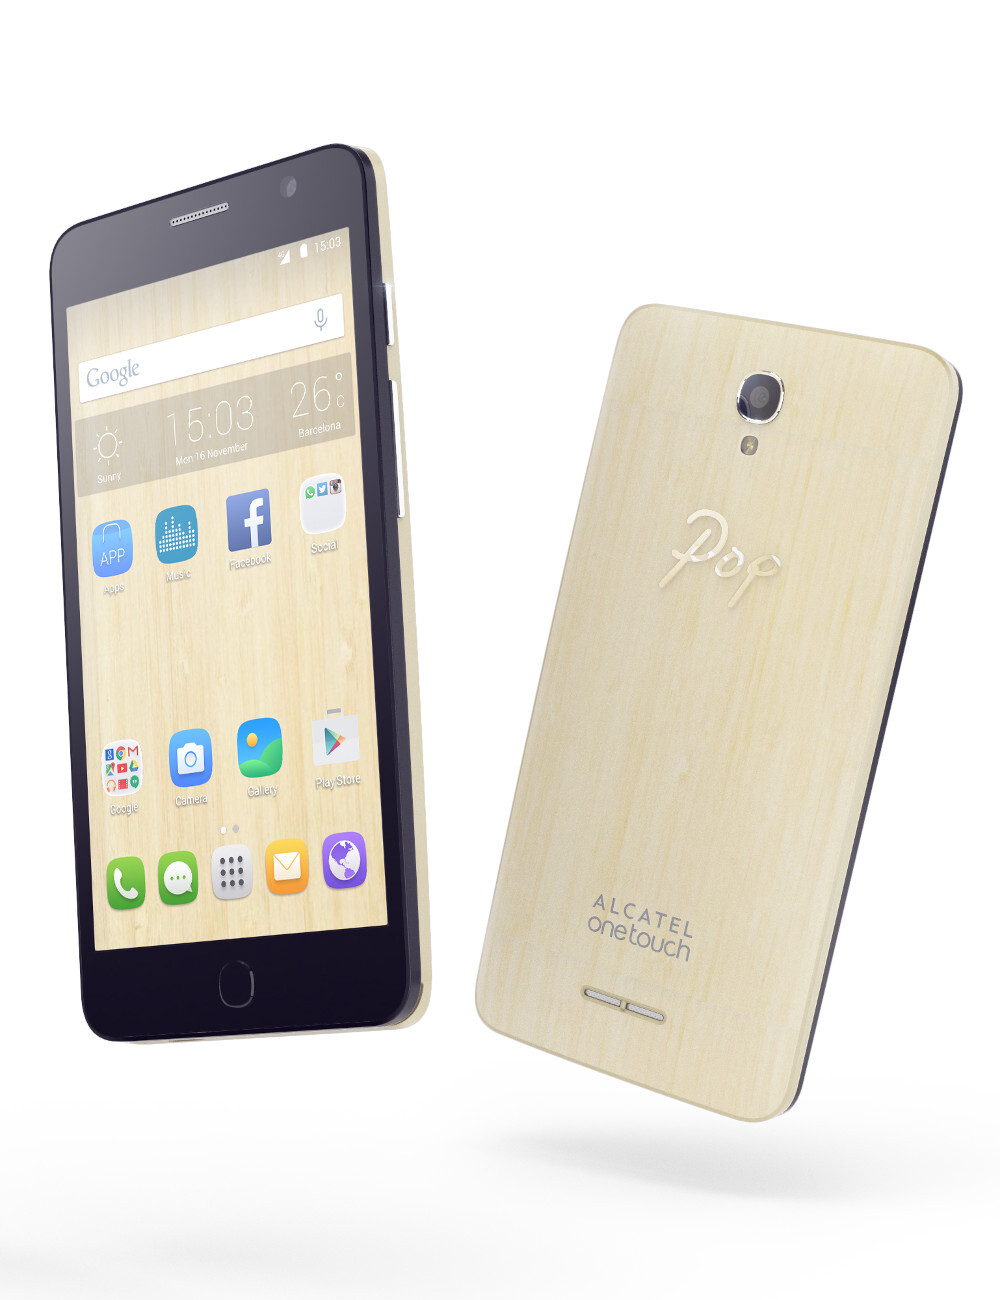 19th June alcatel one touch pop 3 5025d dual the very